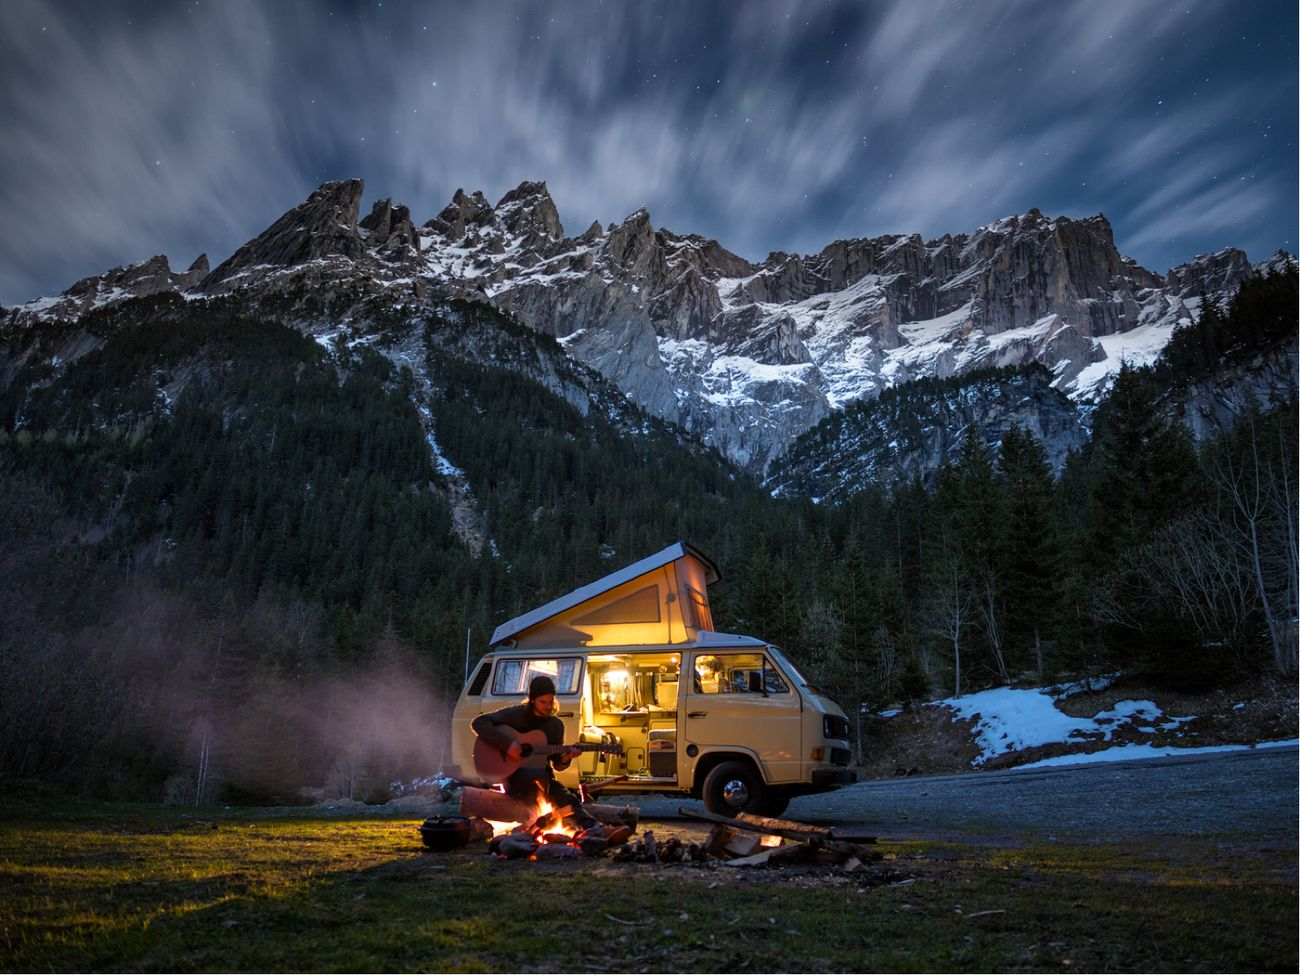 My Ultimate Road Trip Photo Contest Winner